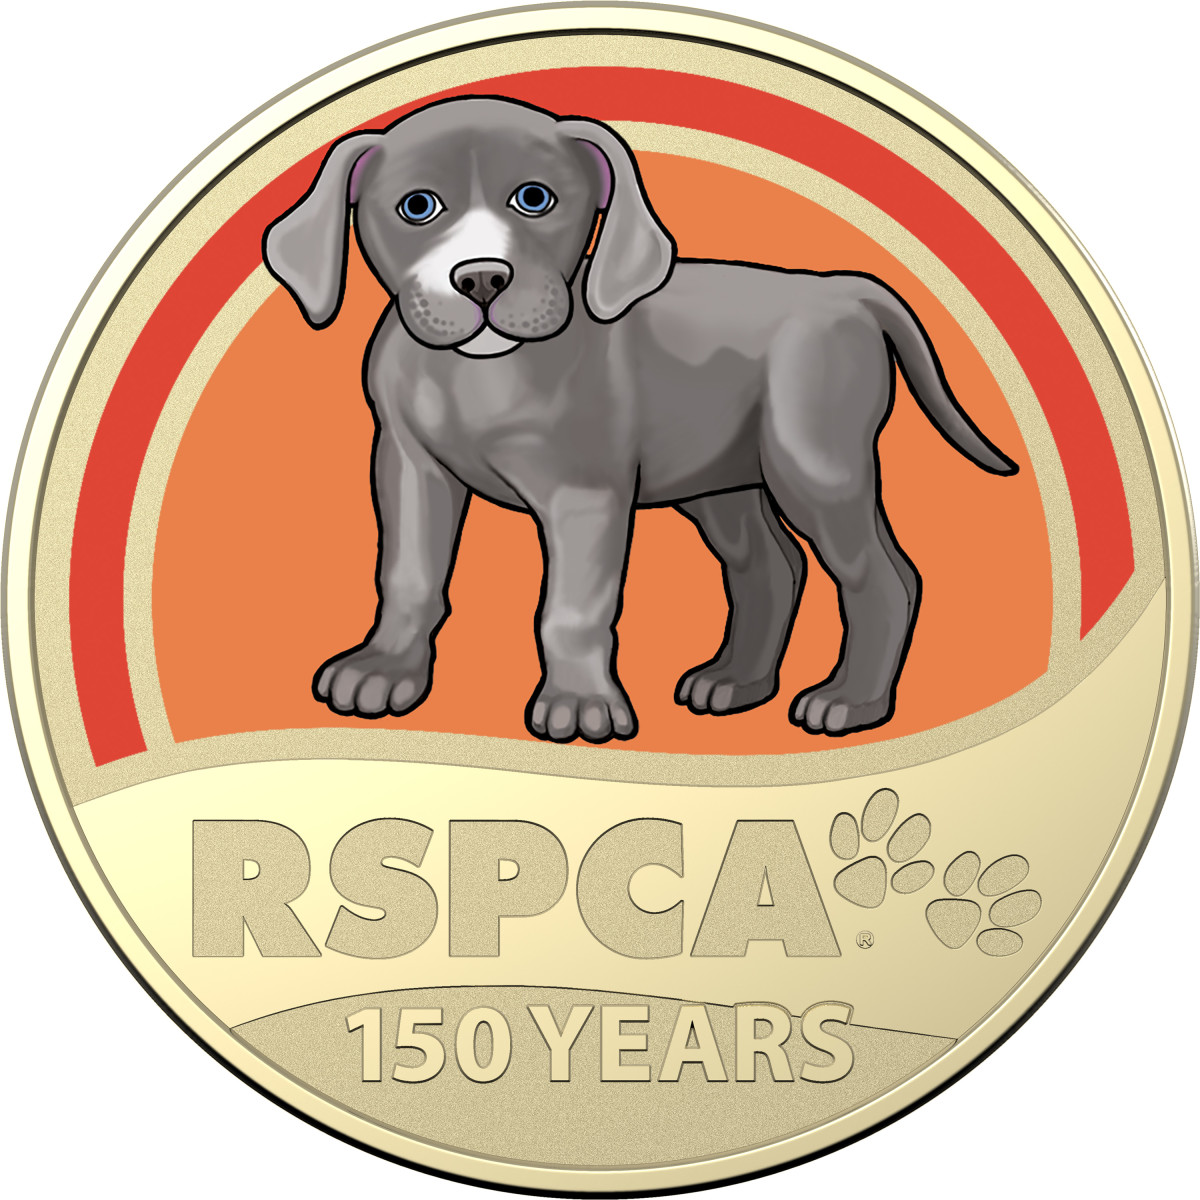 These RSPCA coins remind us to give a little extra love to all our furry-and not so furry- friends